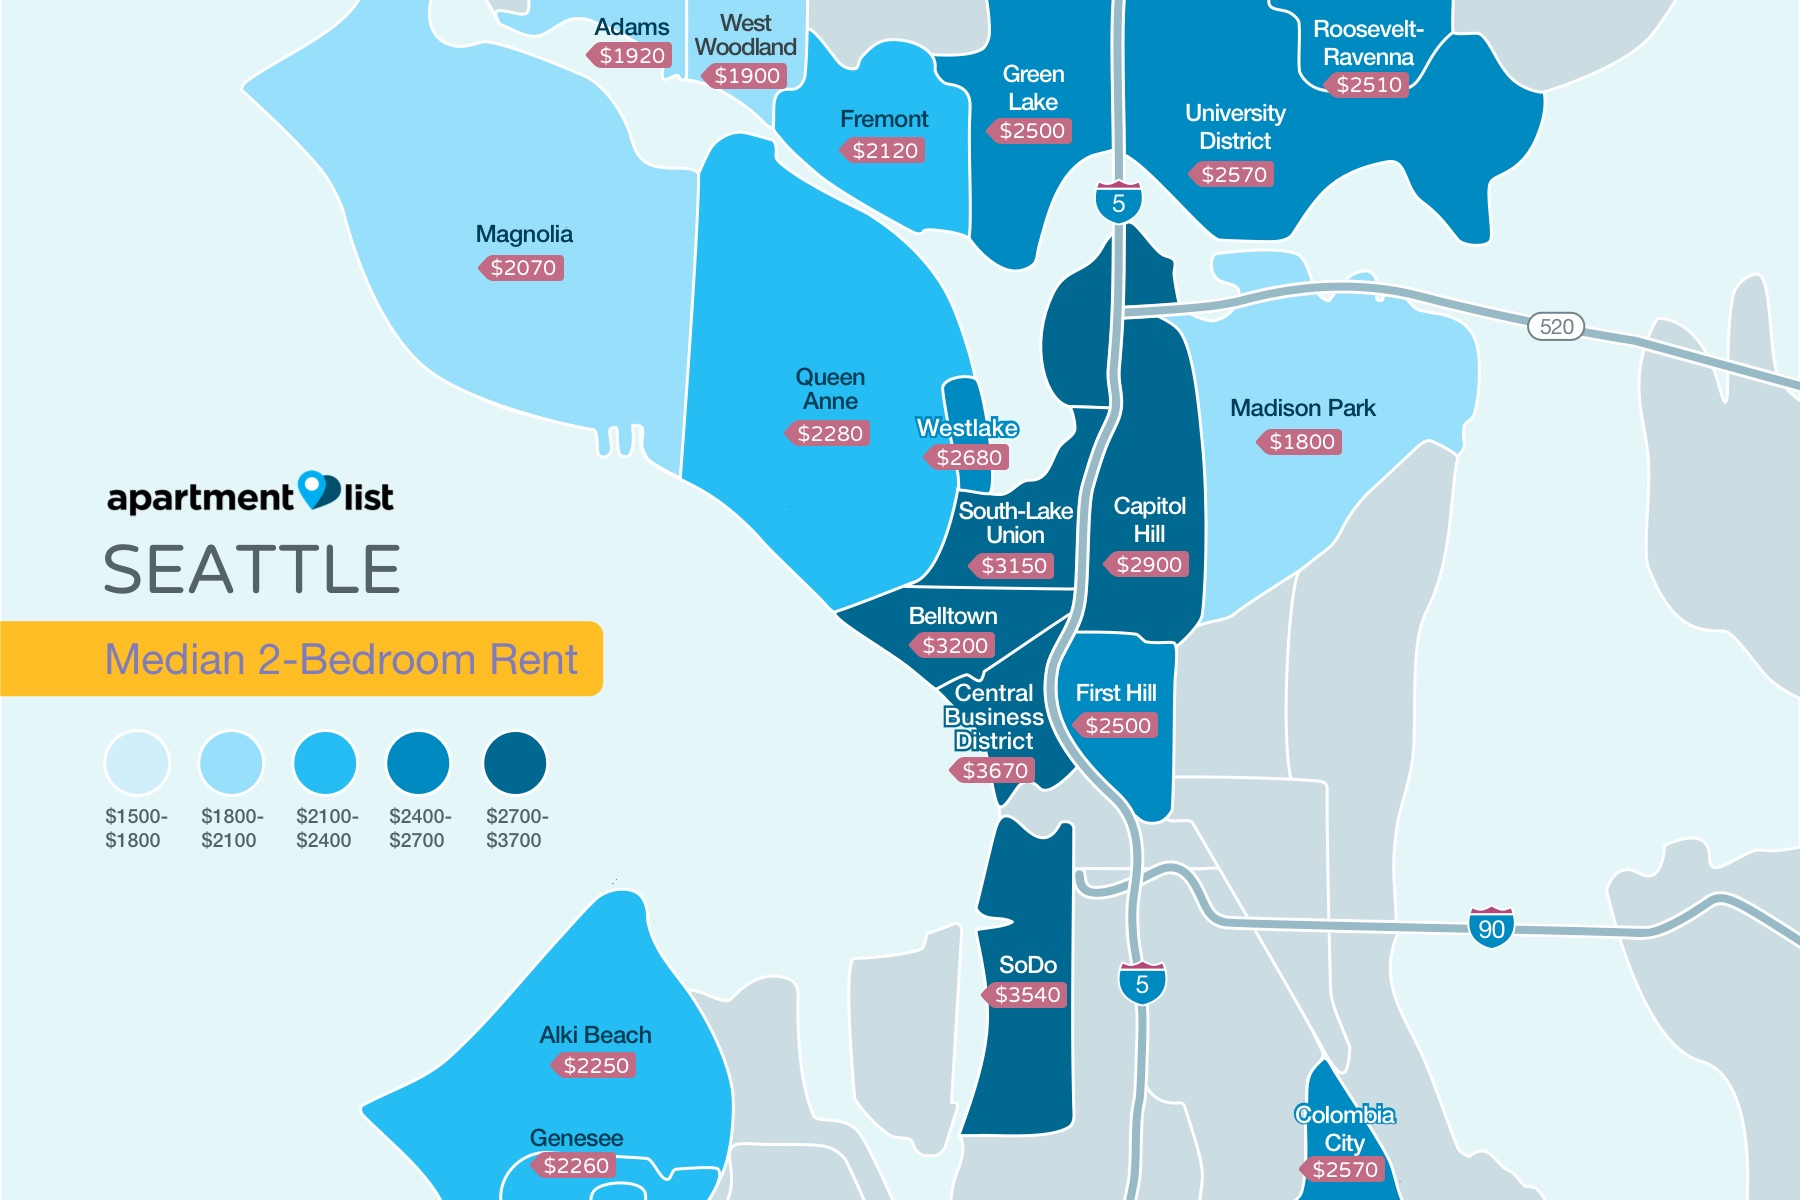 Seattle Neighborhood Price Map